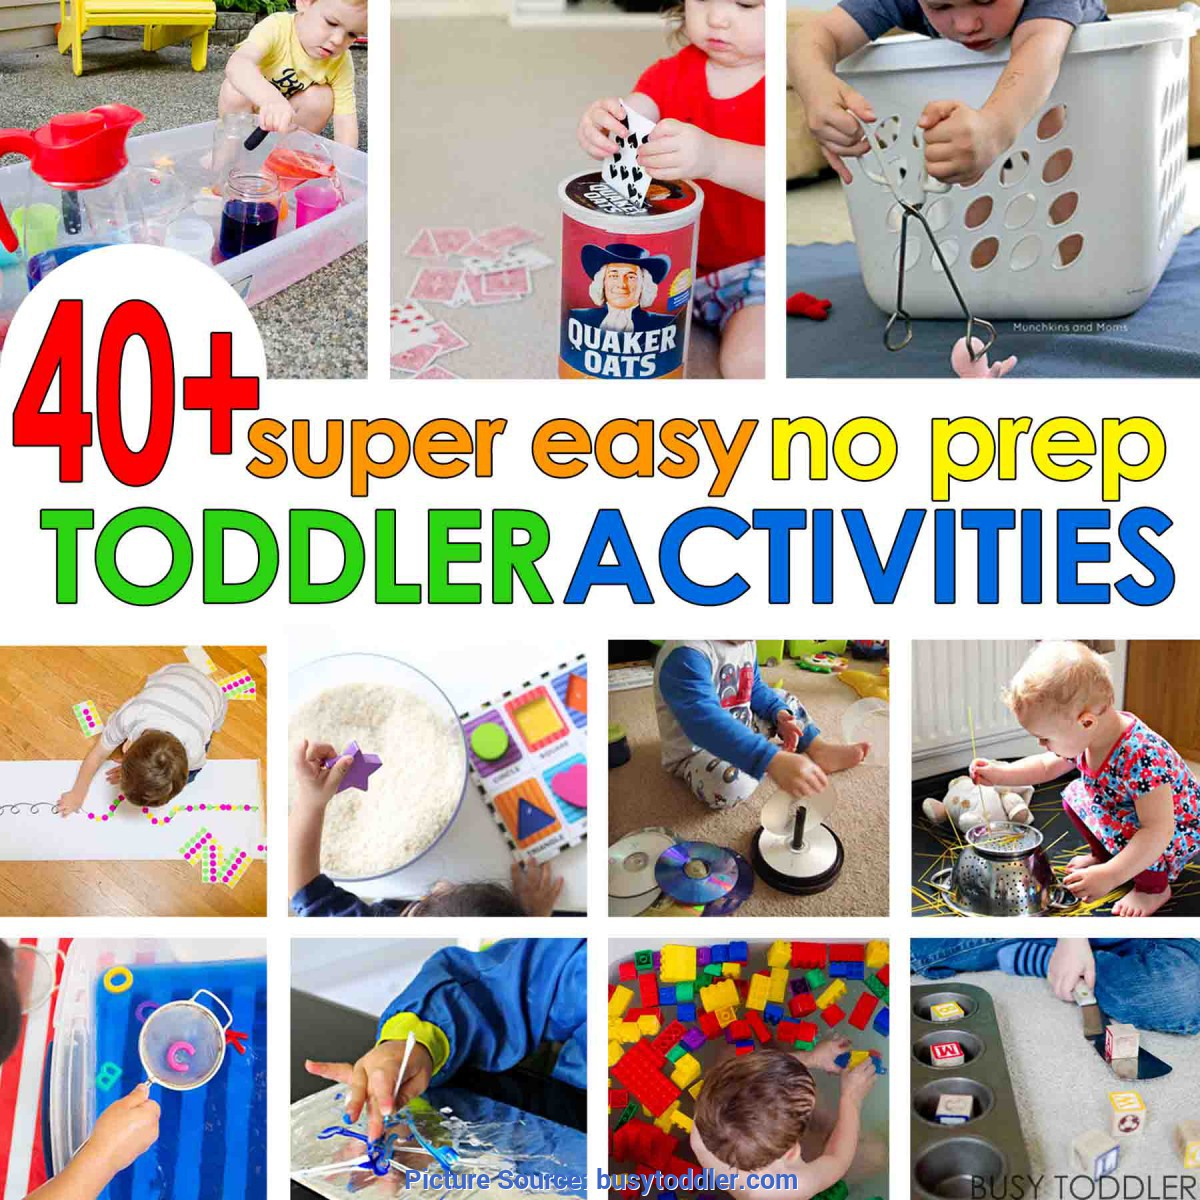 Good Easy Activities For Toddlers 40+ Super Easy Toddler Activities - Busy Tod